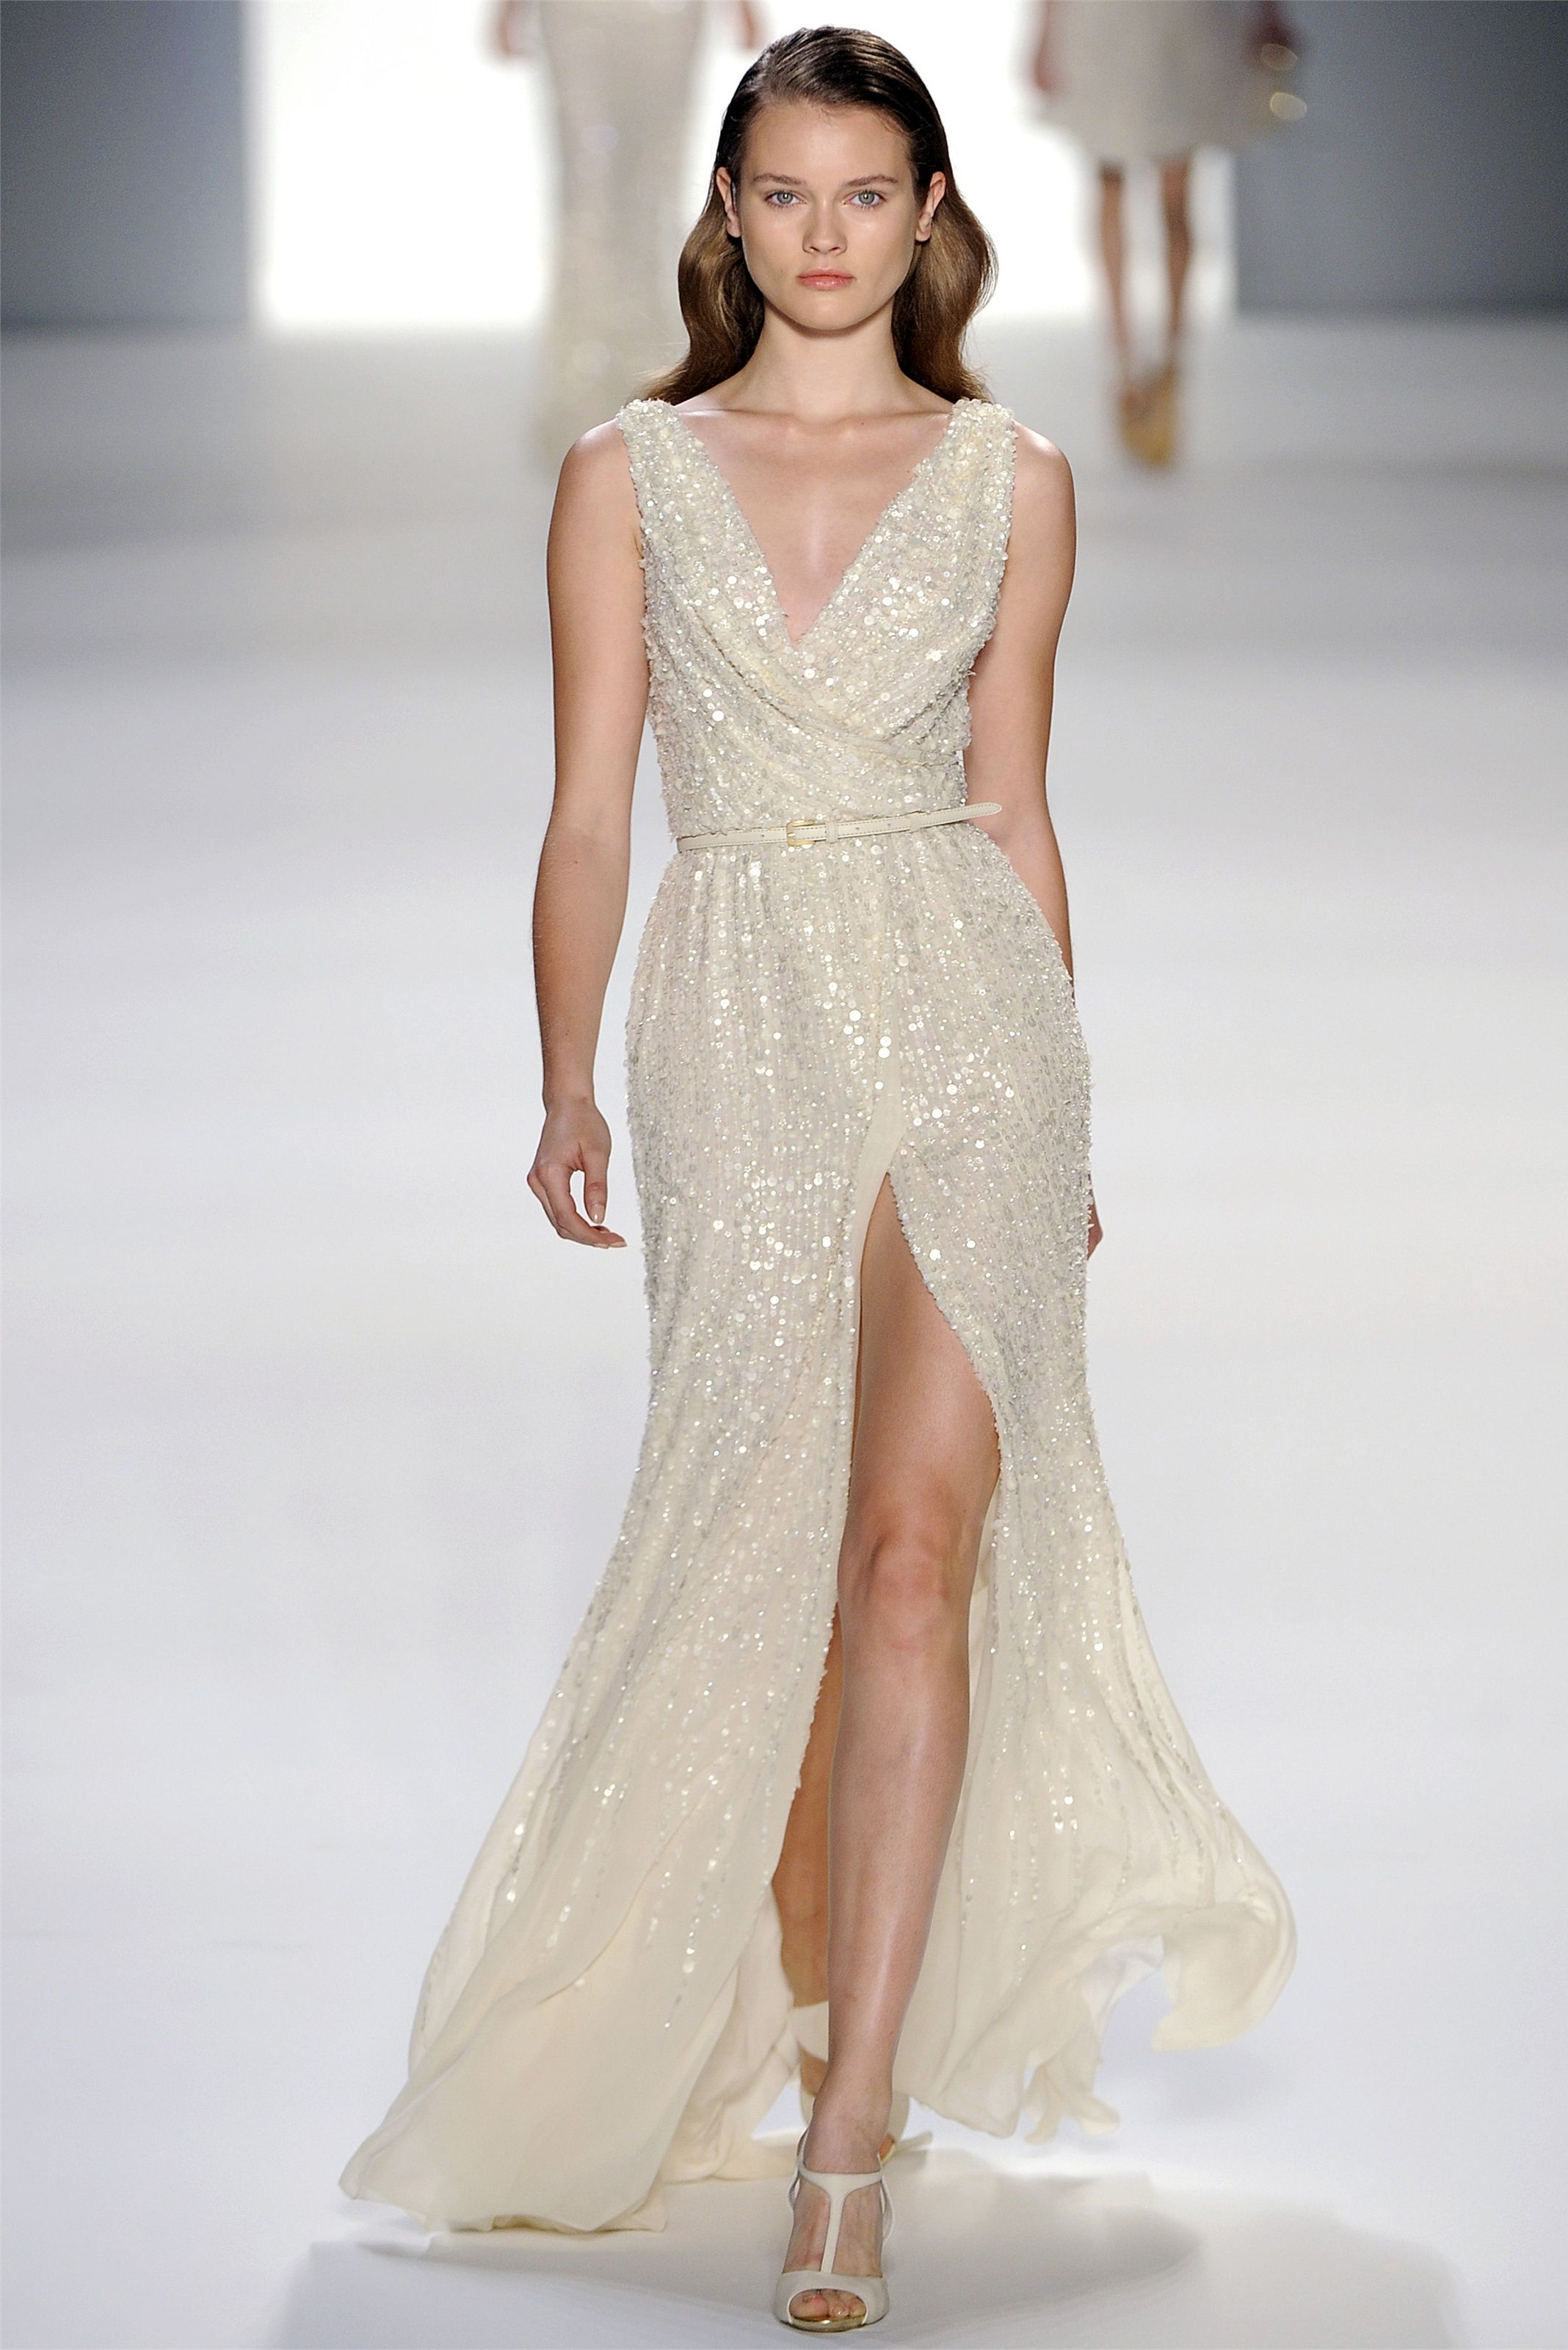 Elie saab spring summer readytowear gowns pinterest